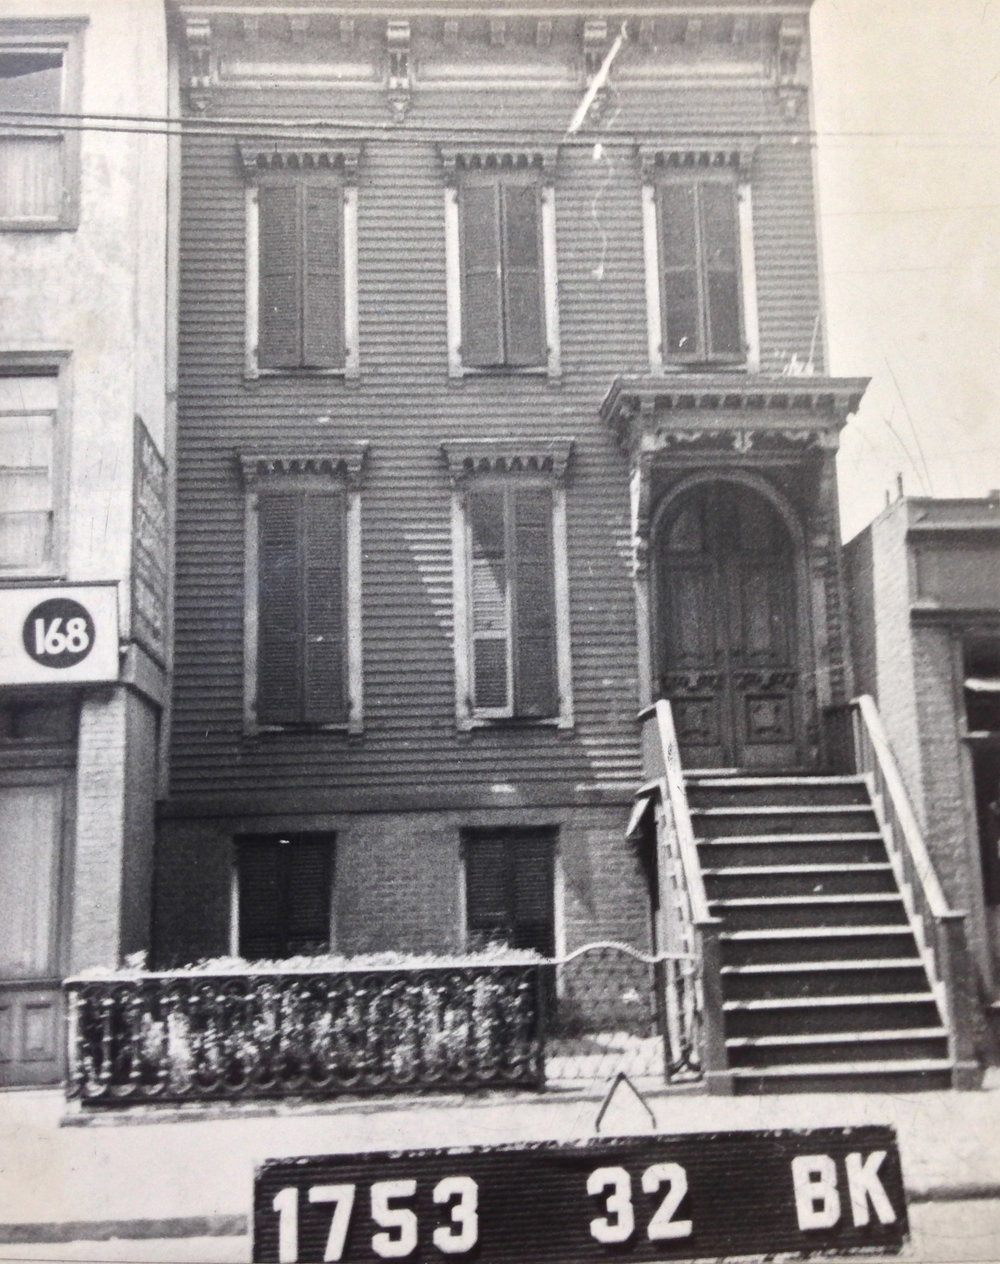 166 Nostrand Ave., early 1940s. Photo: Department of Finance collection, NYC Municipal Archives.